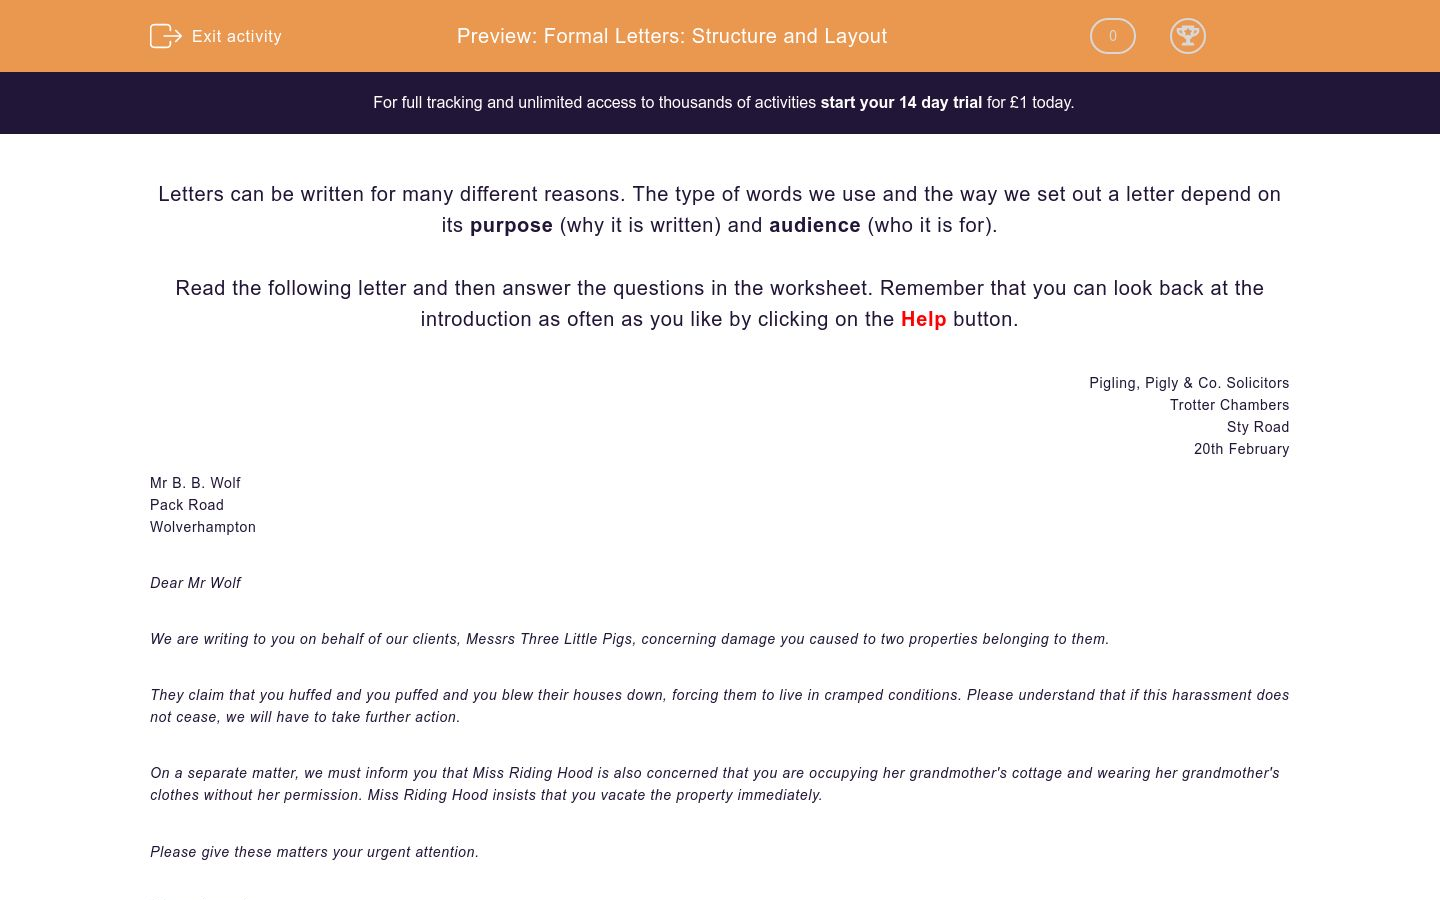 Formal Letters: Structure and Layout Worksheet - EdPlace